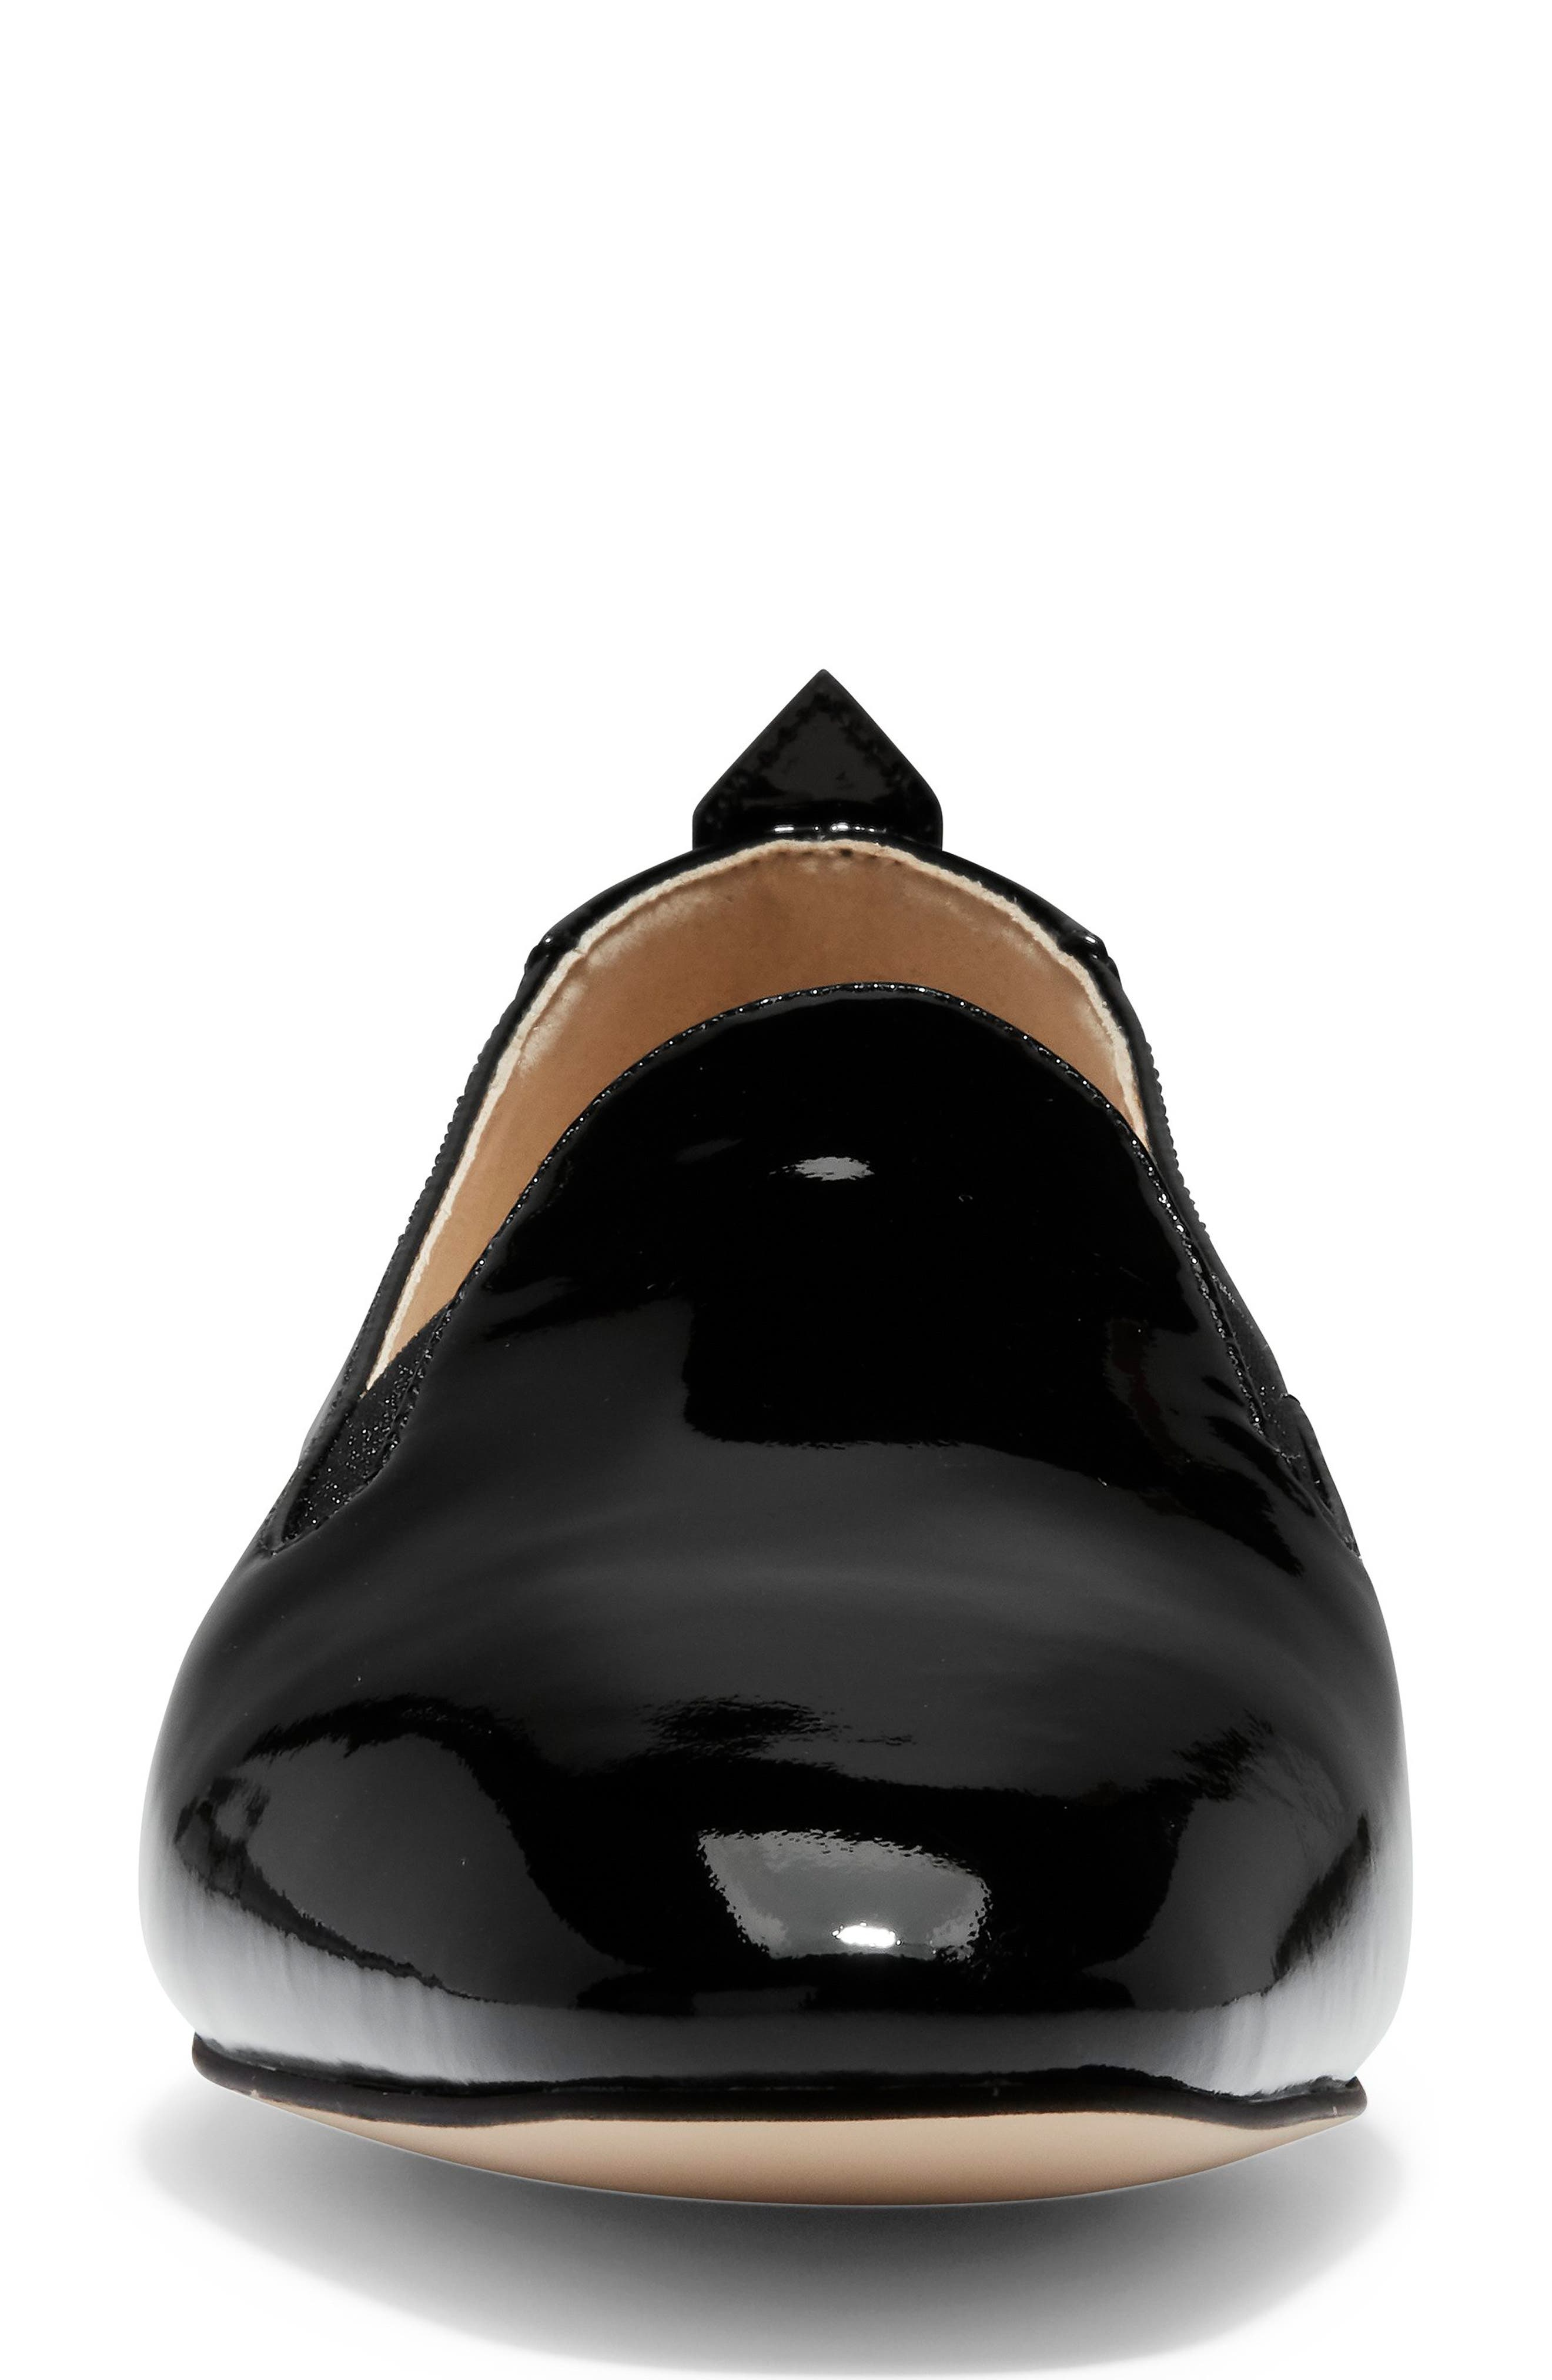 COLE HAAN, Portia Loafer, Alternate thumbnail 4, color, BLACK PATENT LEATHER